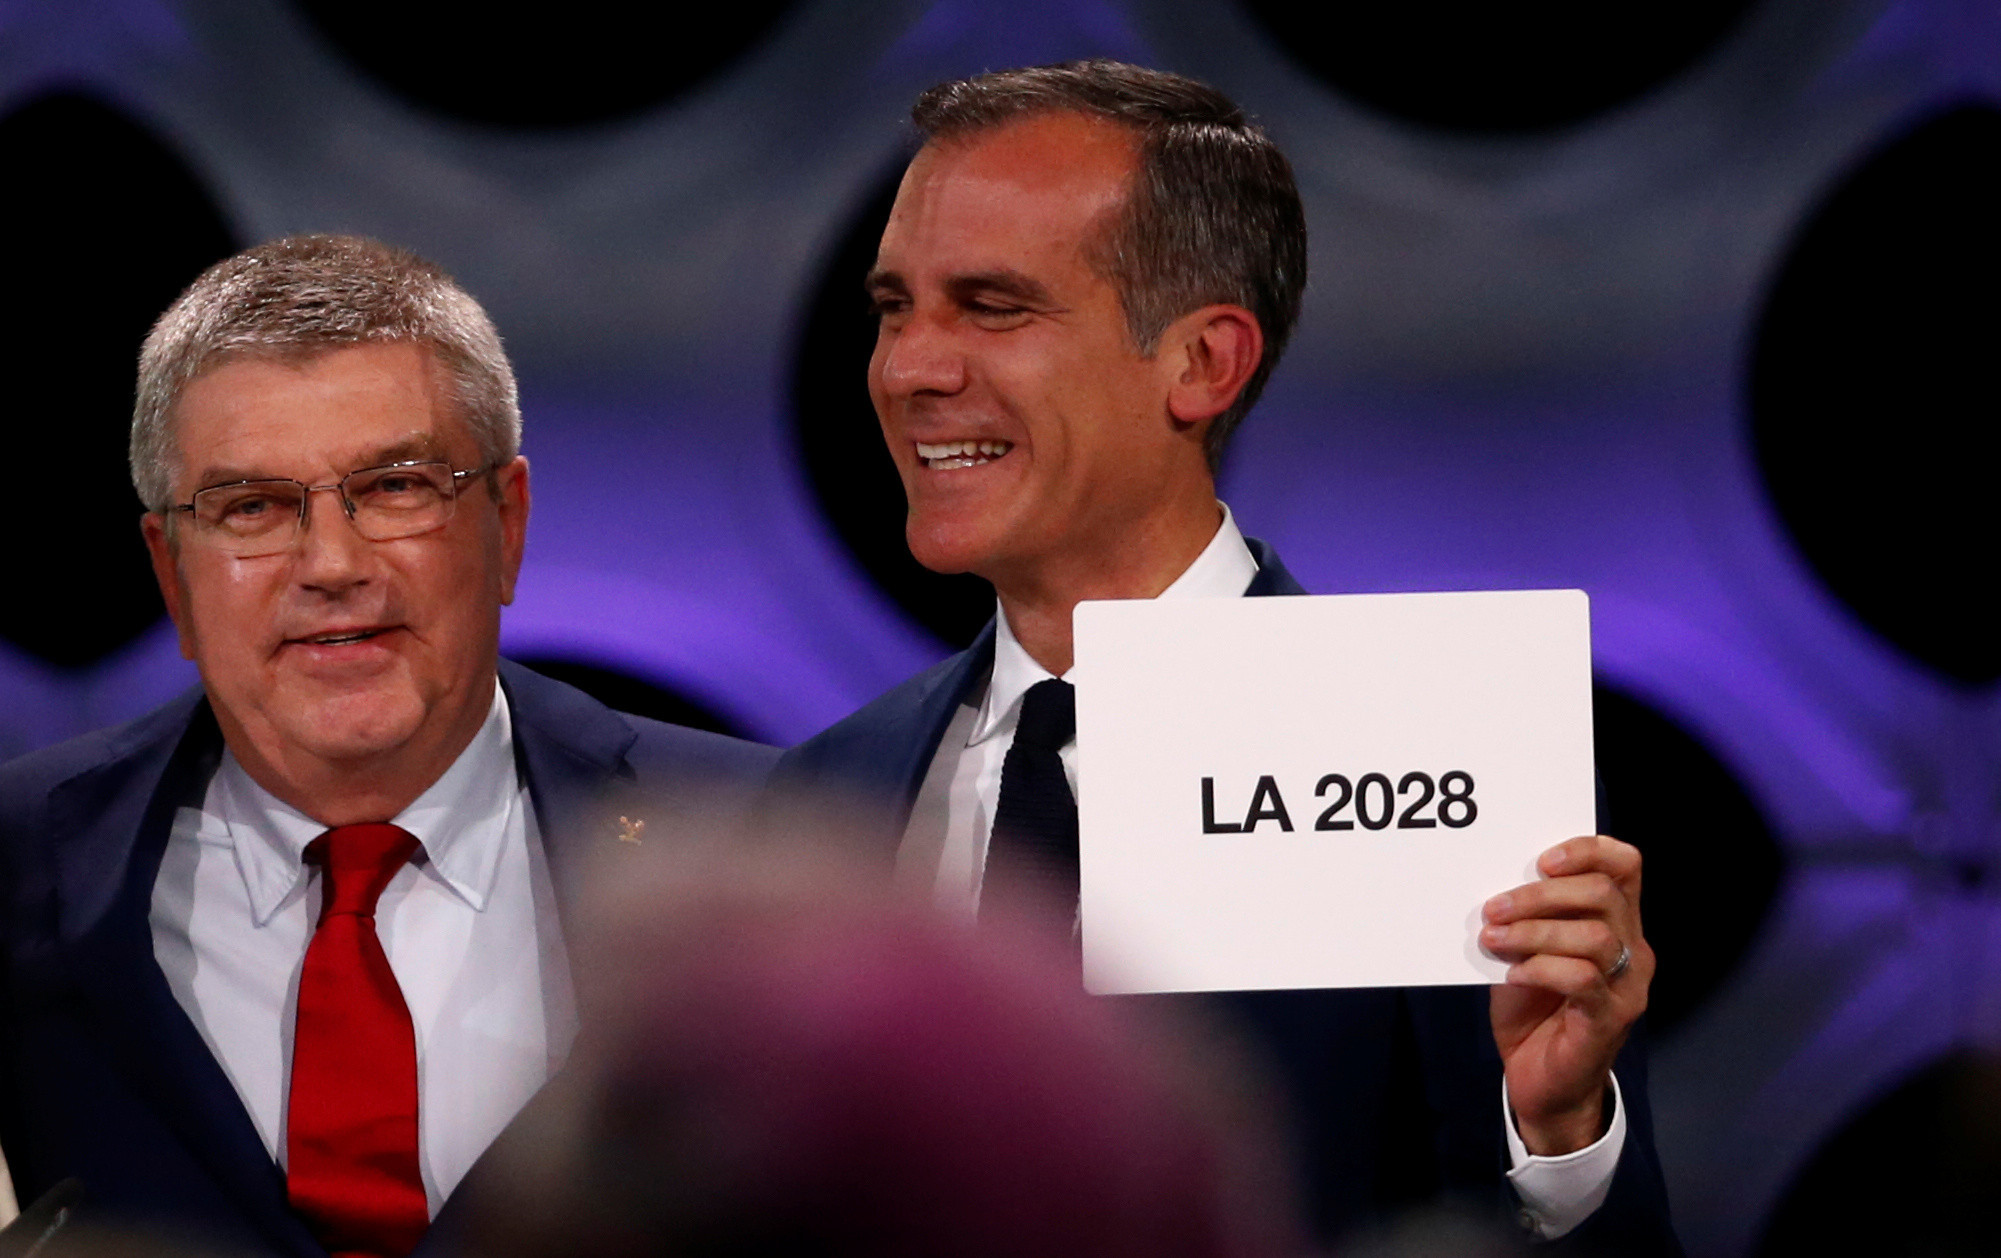 Los Angeles Mayor Eric Garcetti has been a fierce critic of US President Donald Trump ©Getty Images